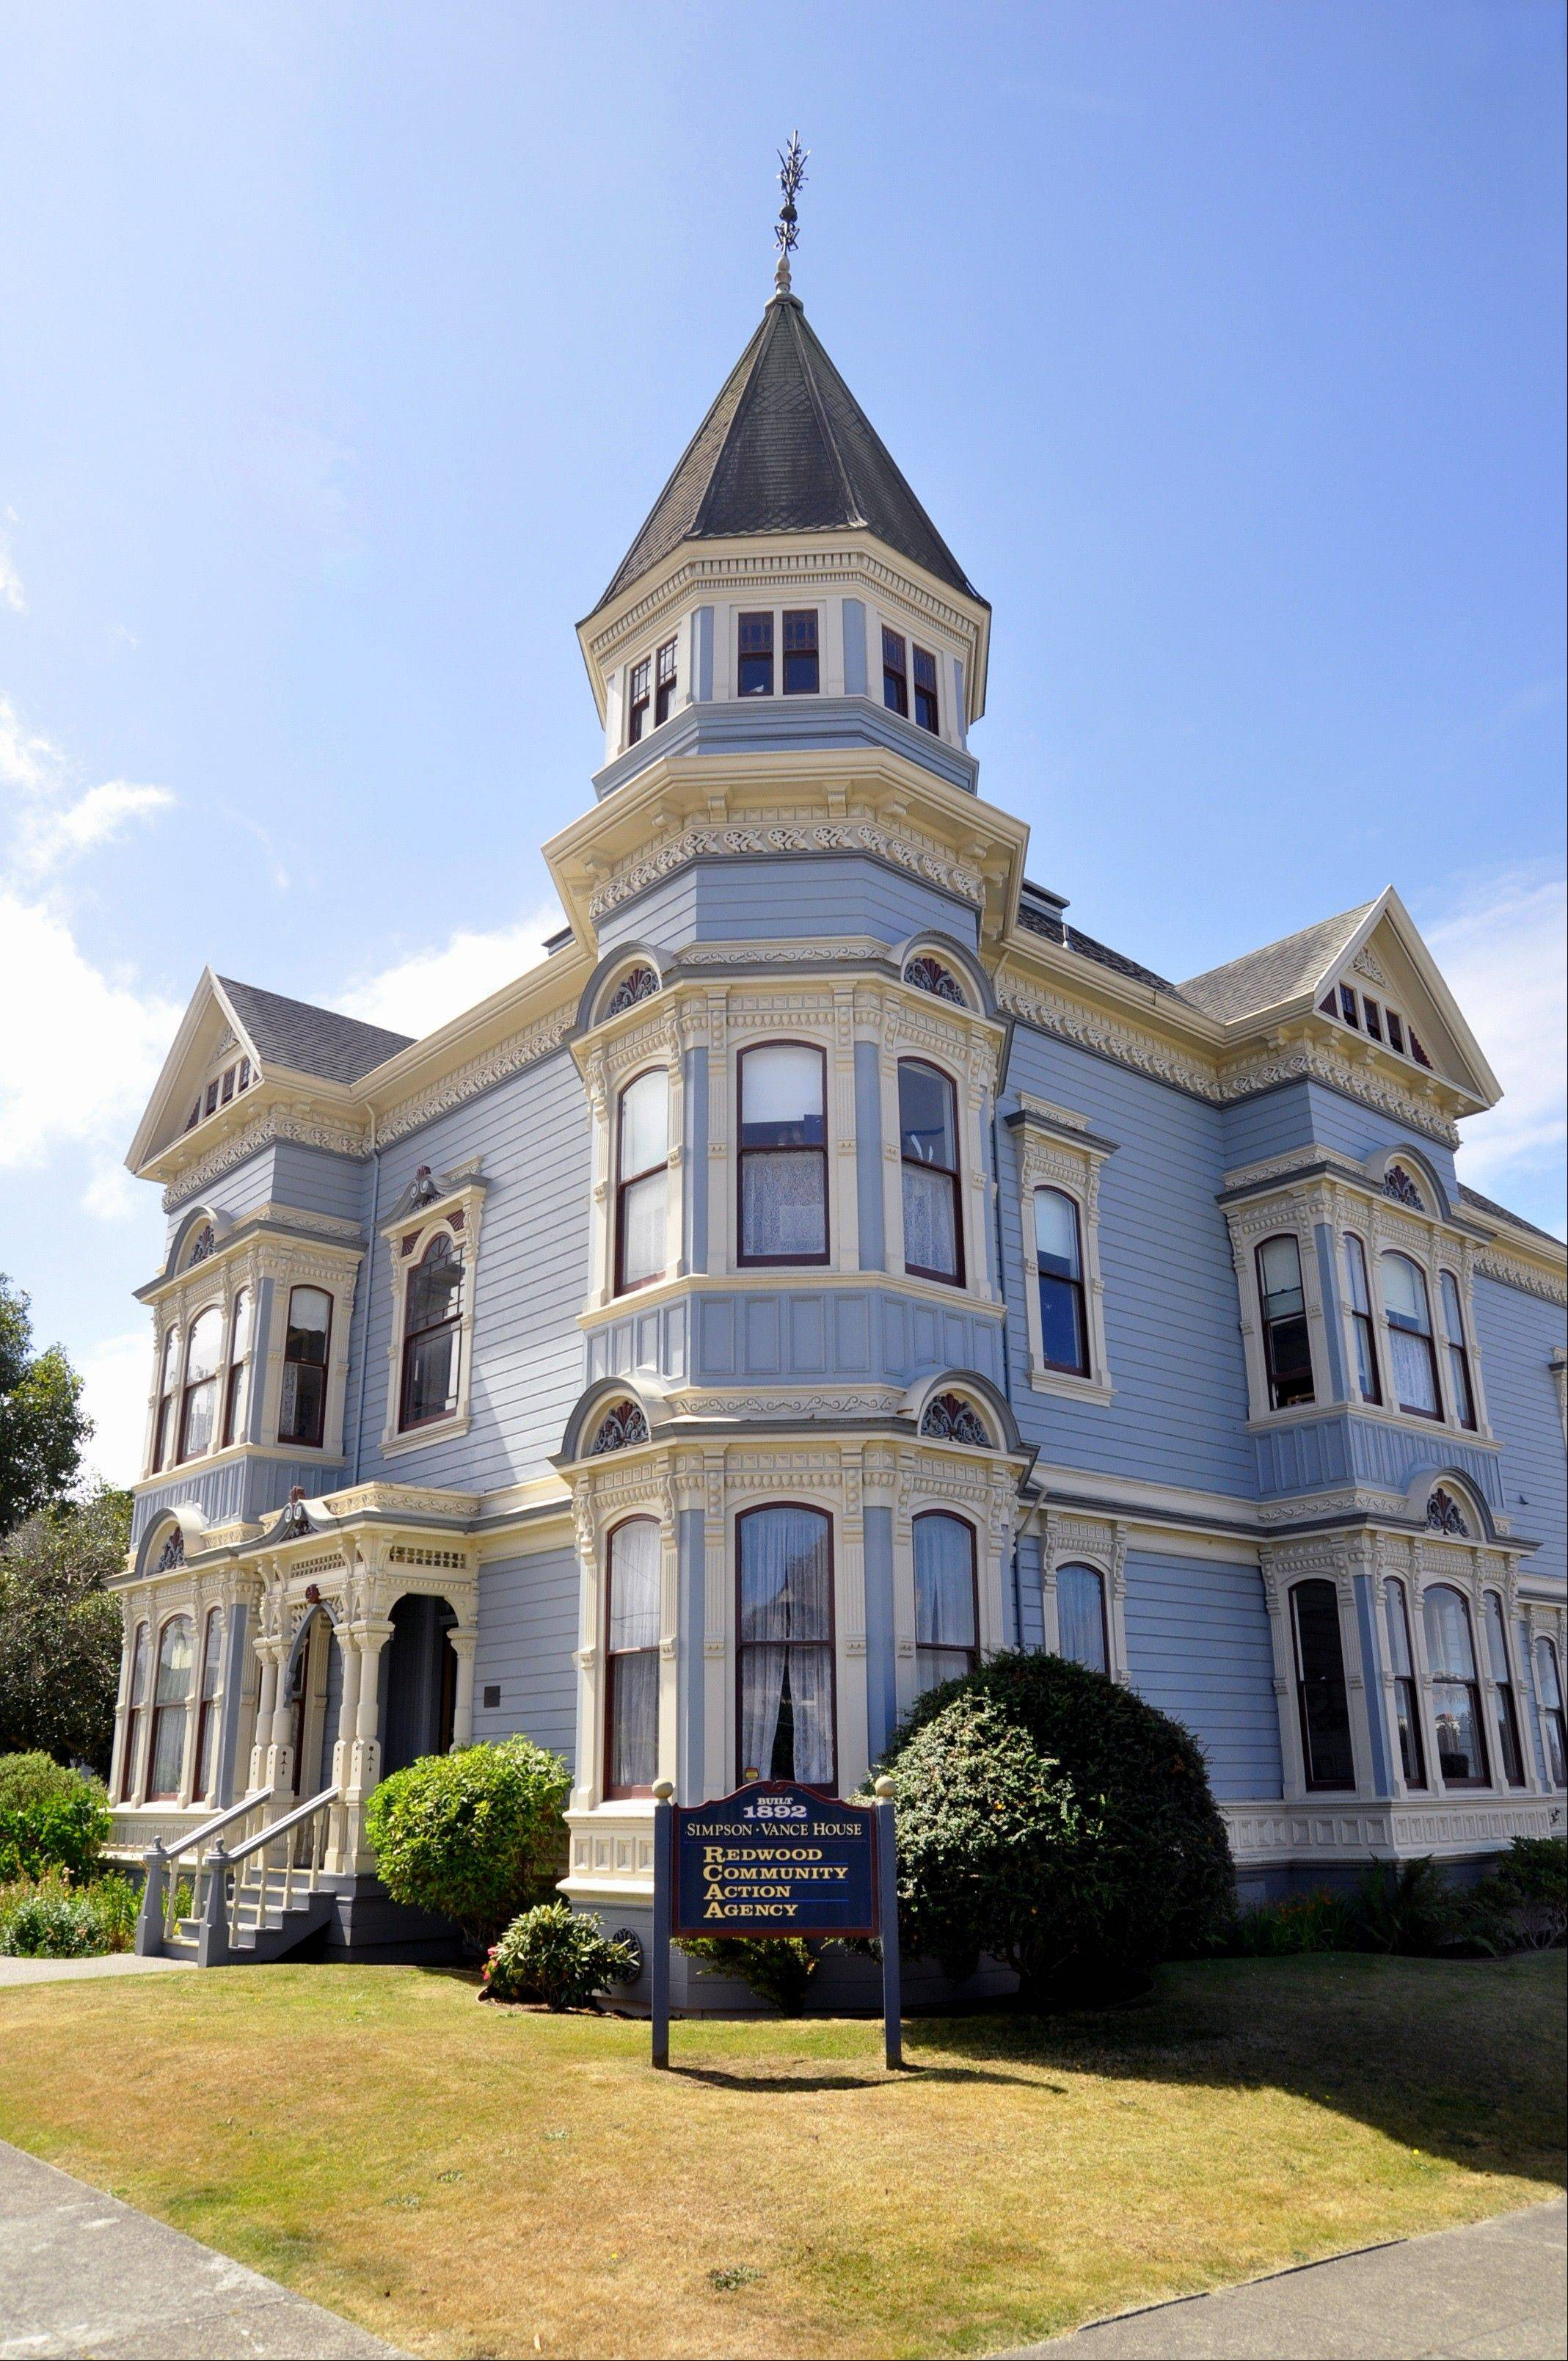 The Simpson-Vance house, built in 1892, is in Eureka, Calif.